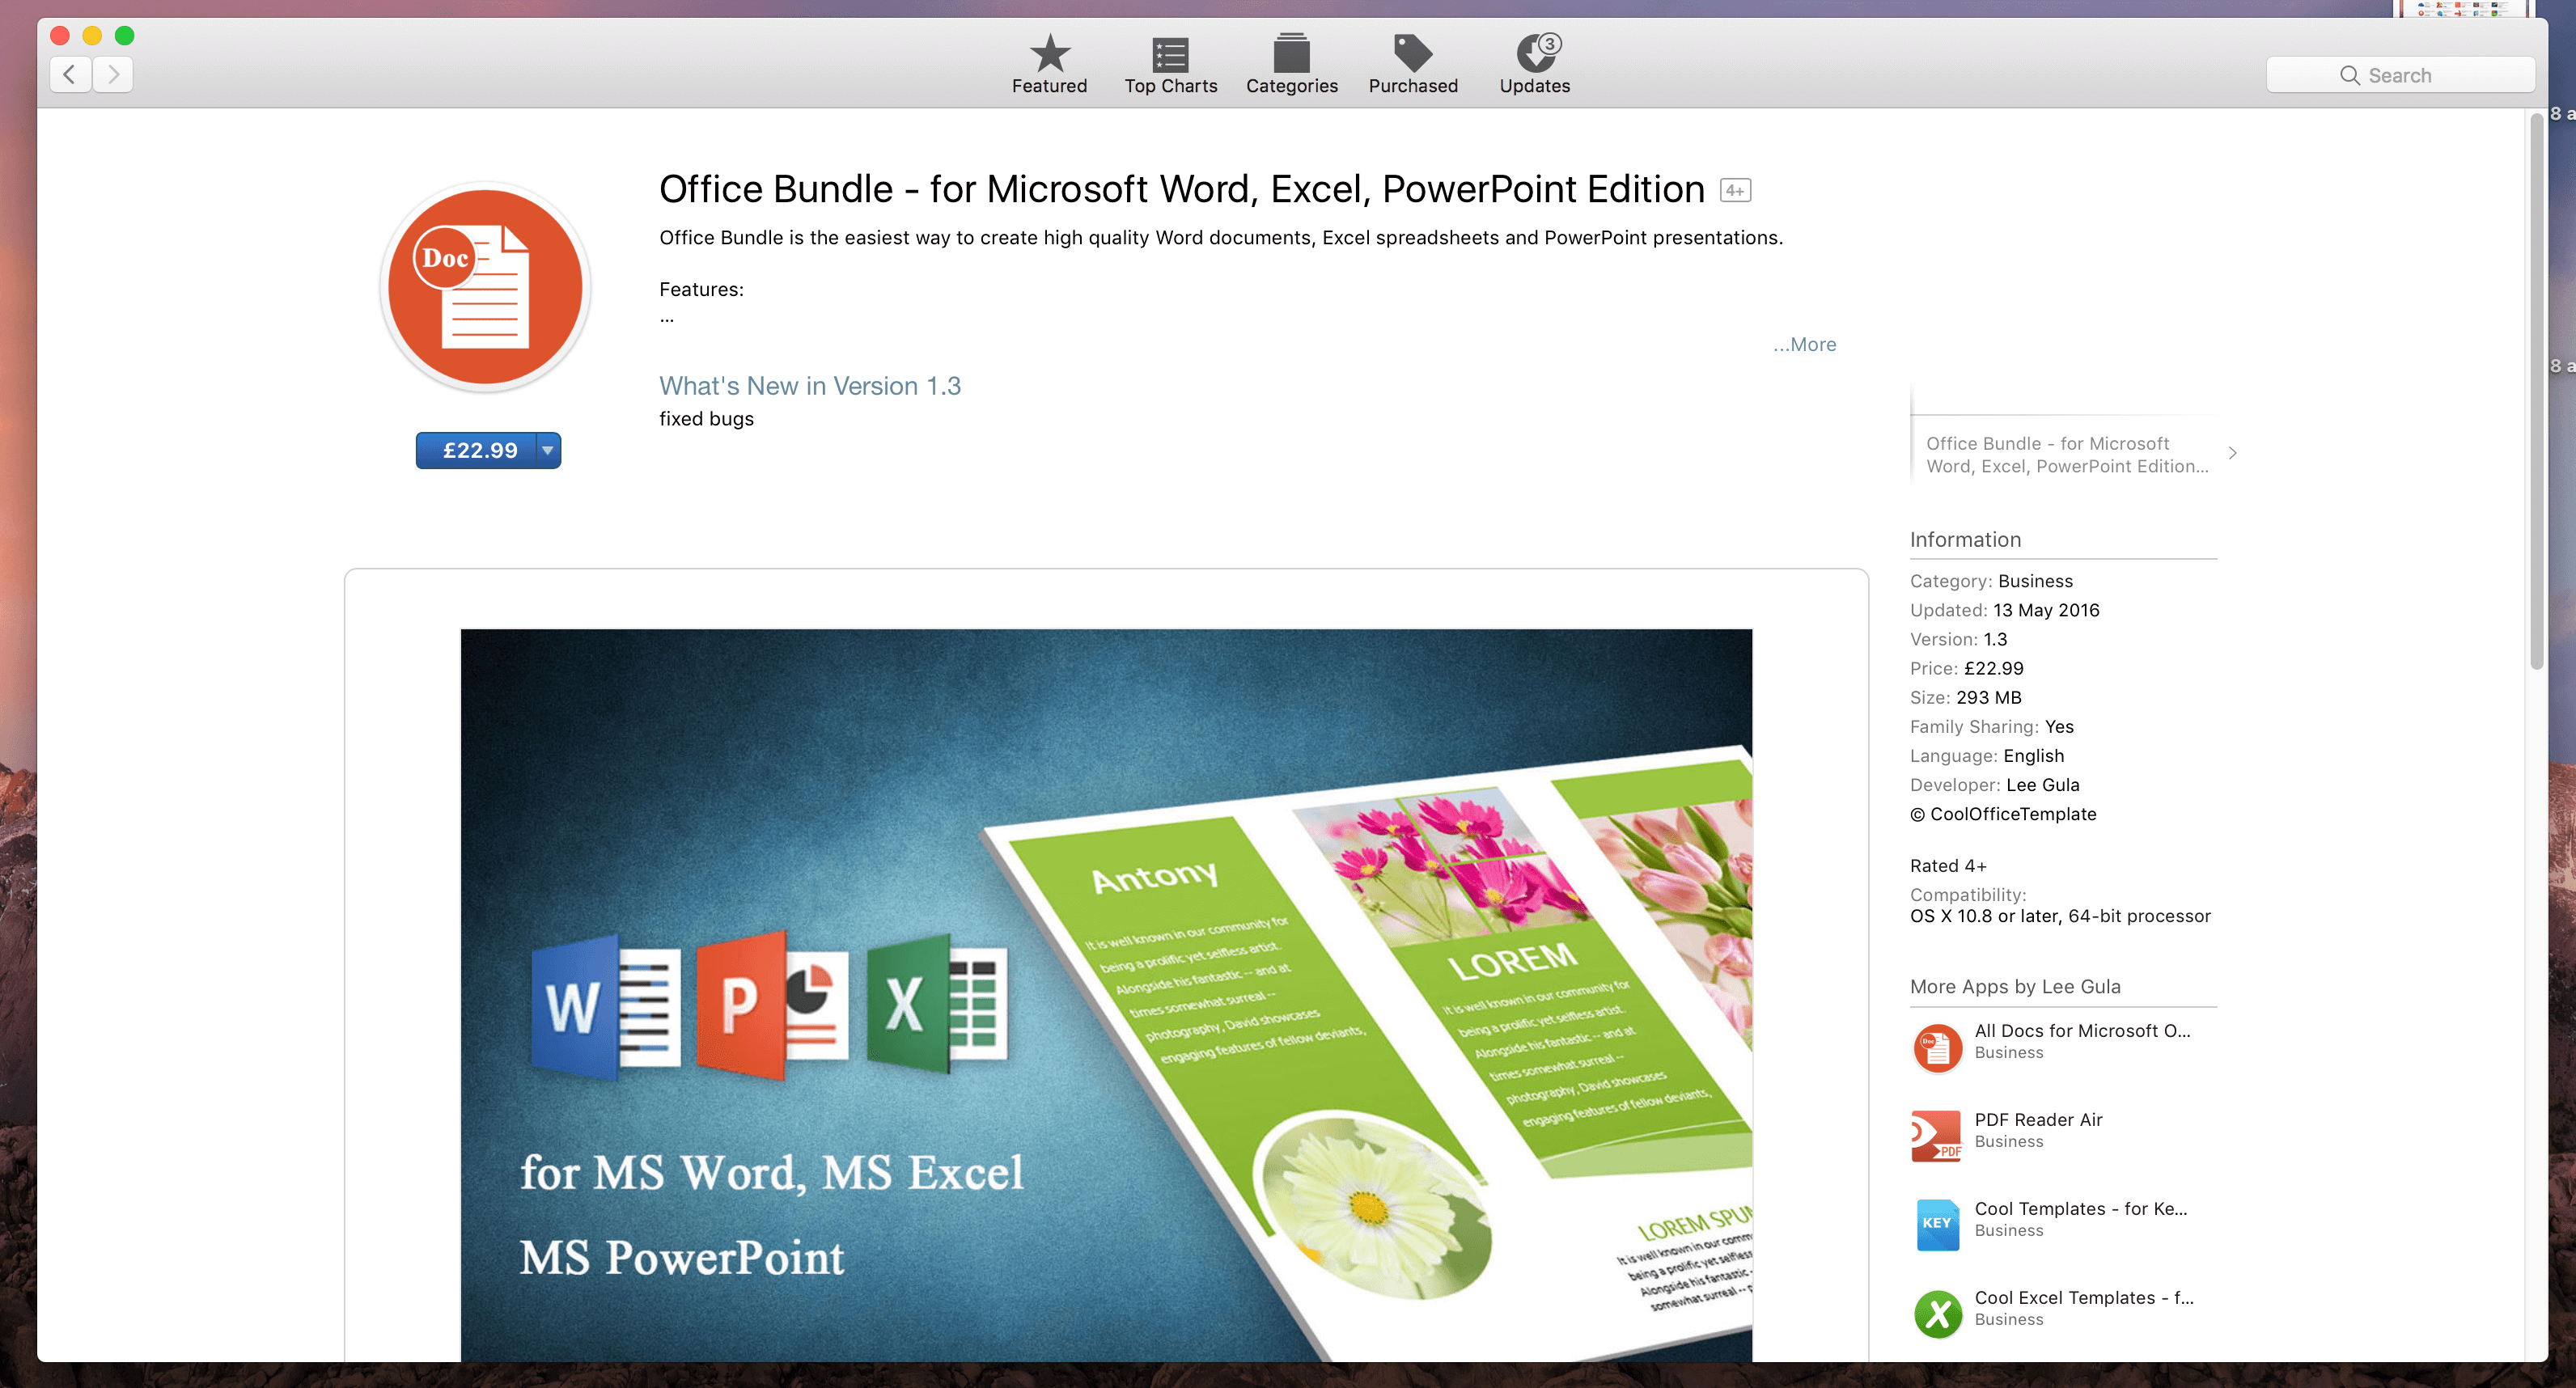 Psa the app store on macos is full of fake microsoft office apps psa the app store on macos is full of fake microsoft office apps toneelgroepblik Choice Image